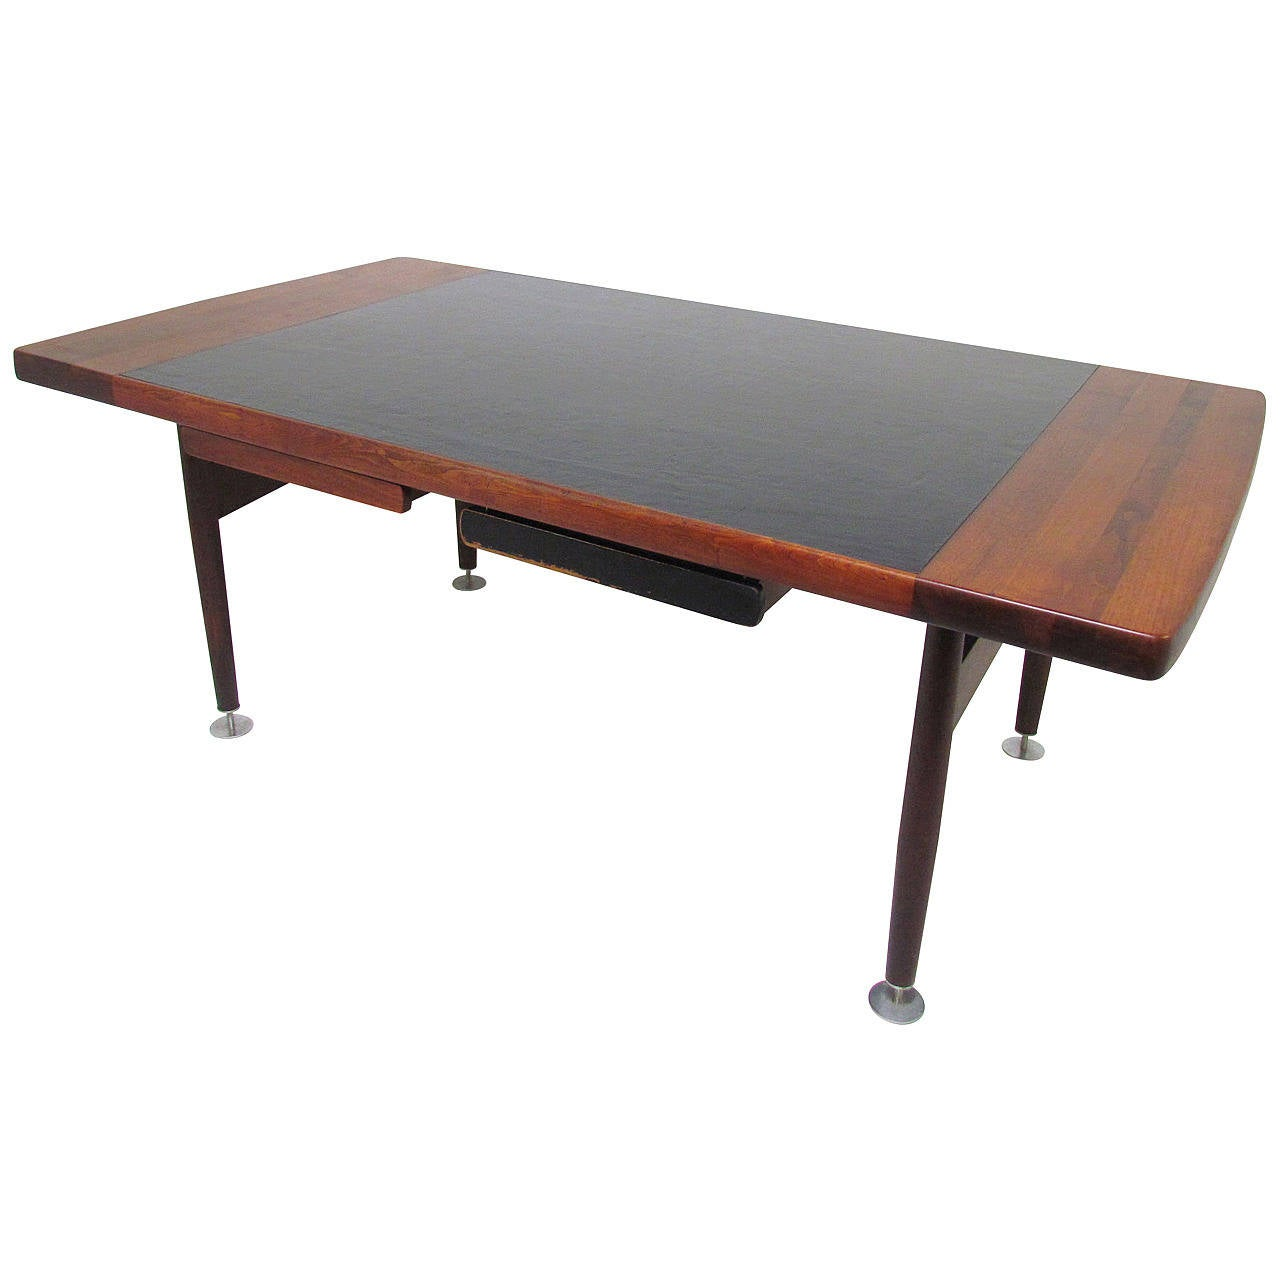 Custom executive desks - Custom Executive Desk In Leather And Walnut In The Manner Of Jens Risom 1